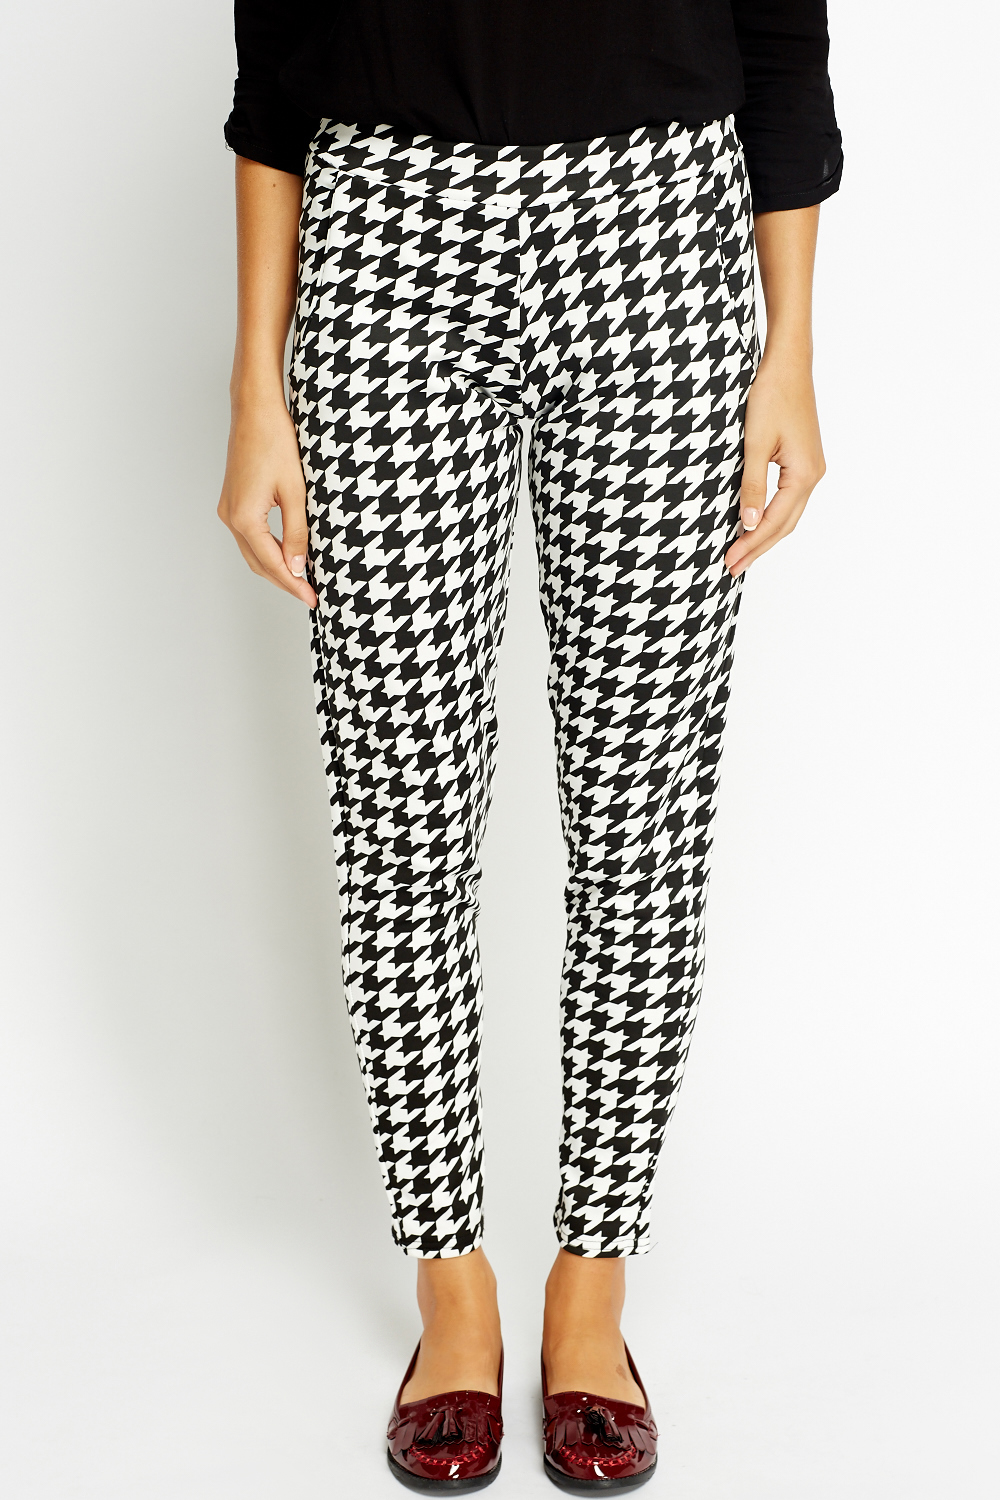 Houndstooth Formal Printed Trousers Just 163 5